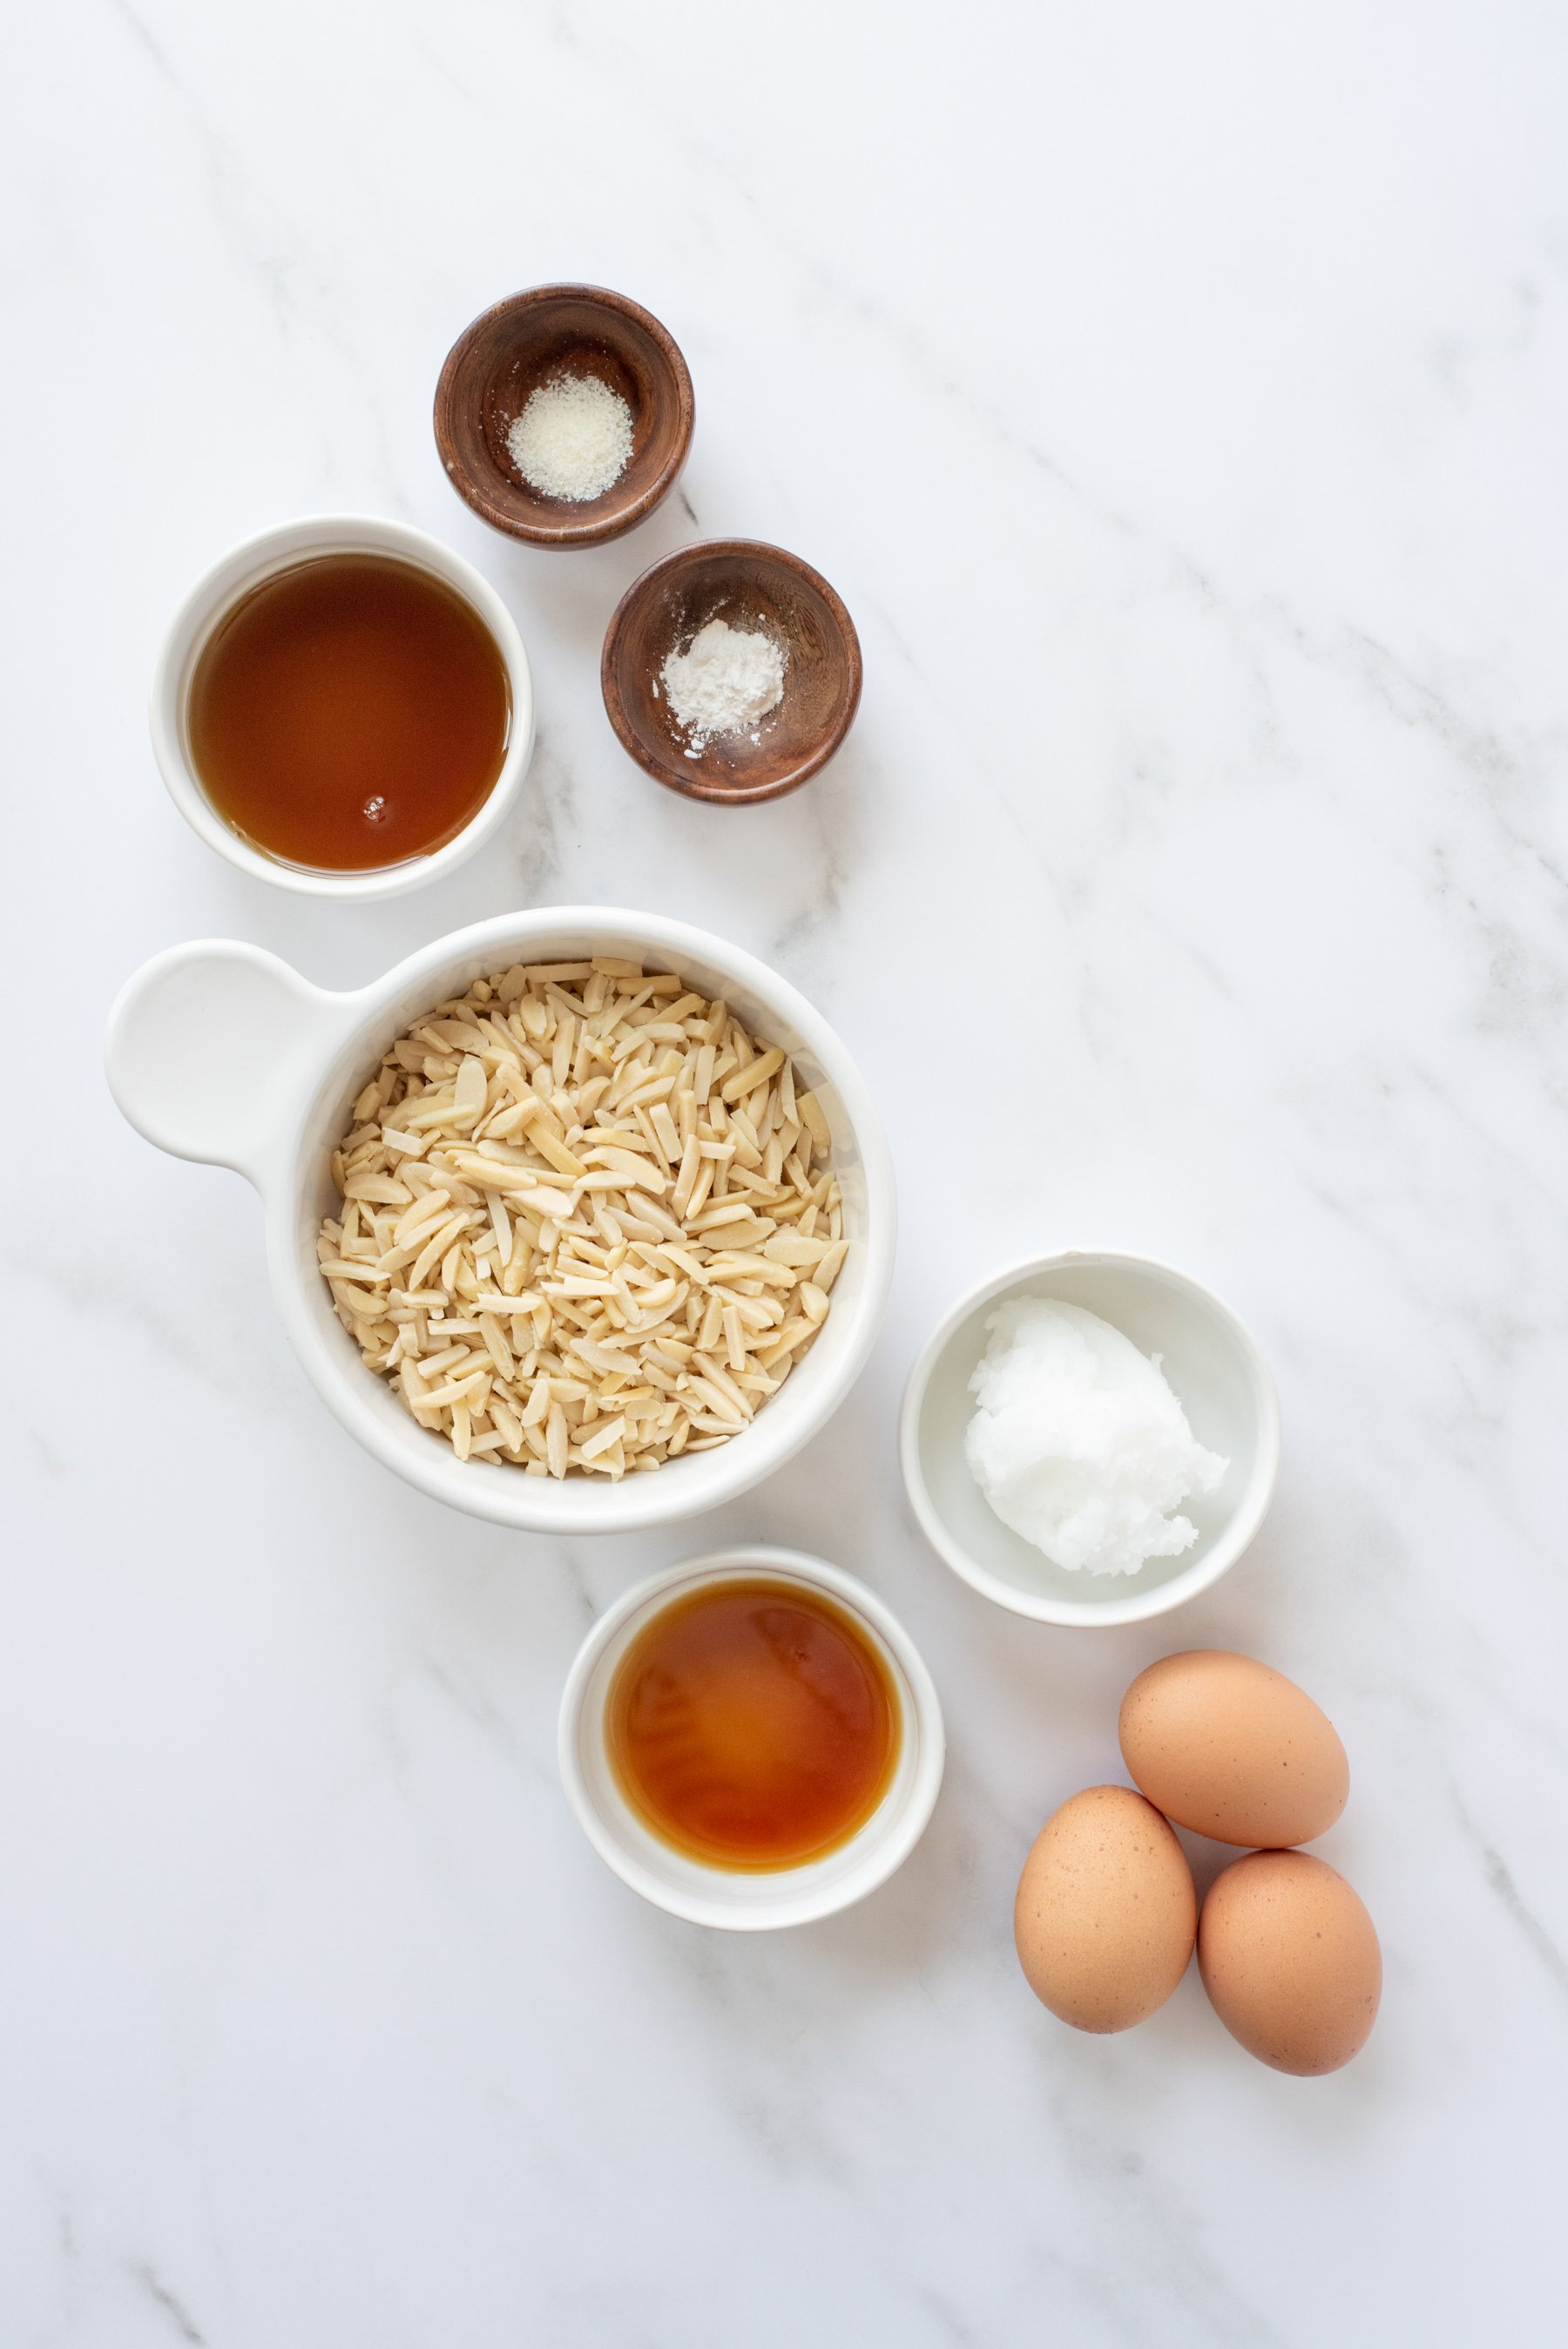 Overhead shot of ingredients for blender almond pancakes - sliced almonds, coconut oil, eggs, coconut oil, and maple syrup